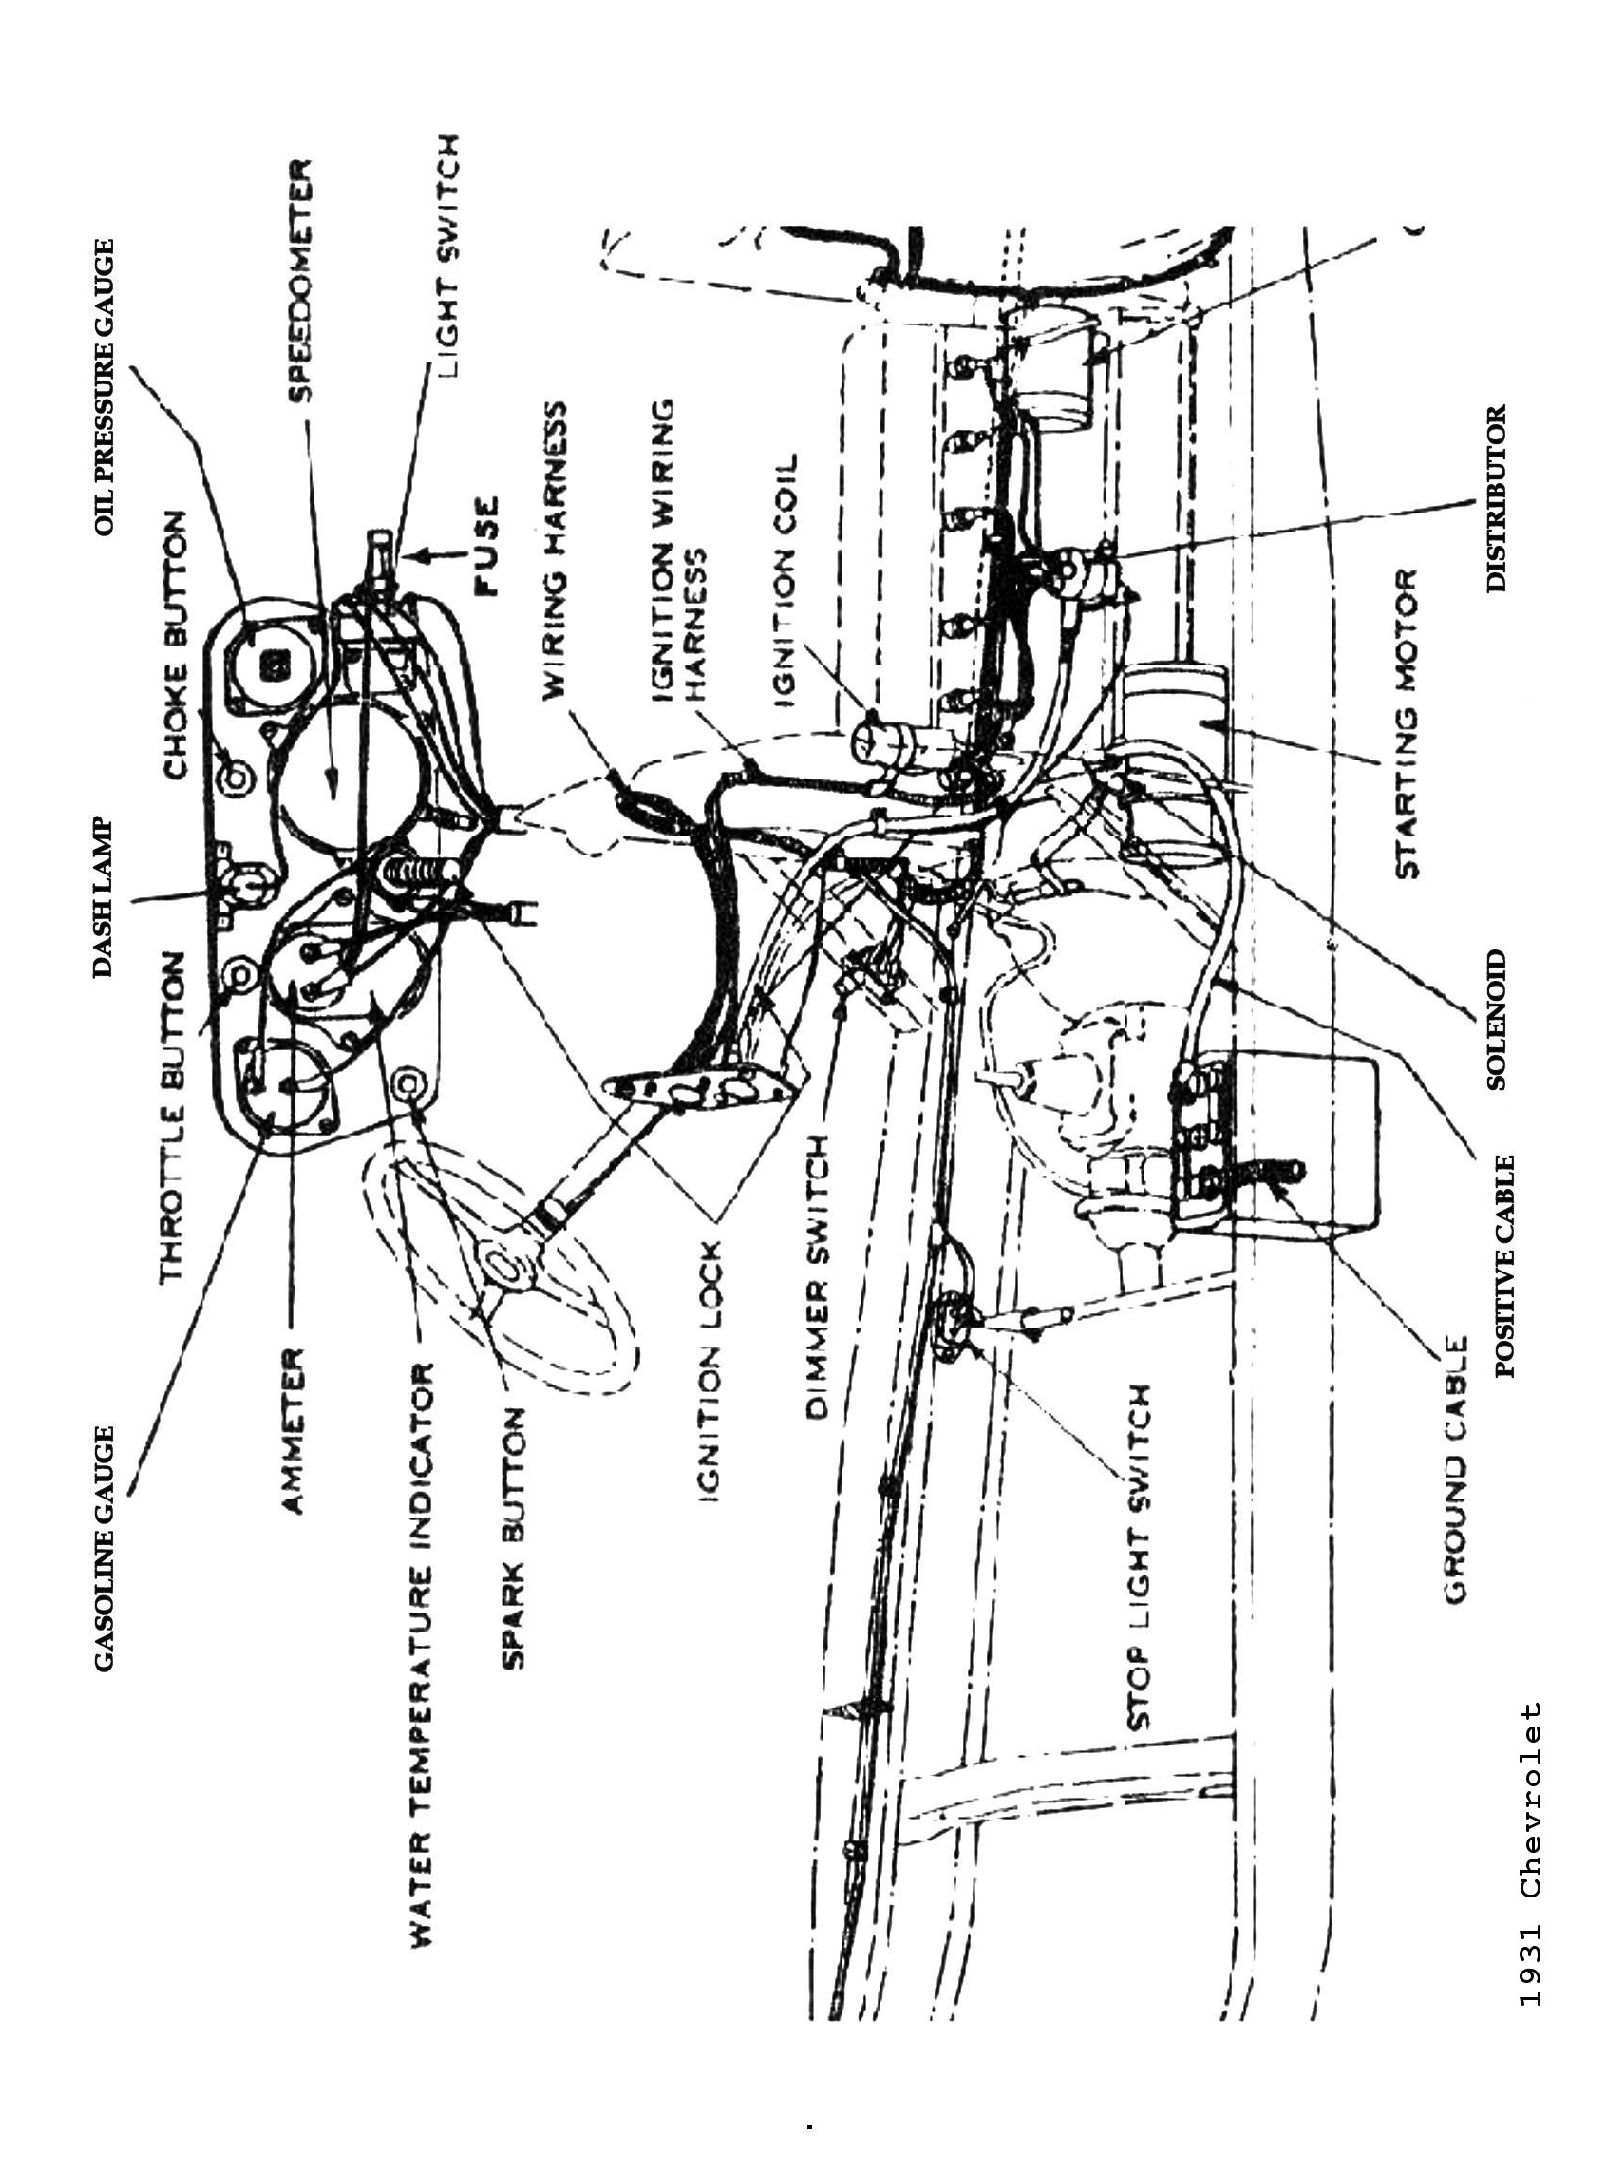 Model A Pick Up Wiring Diagram